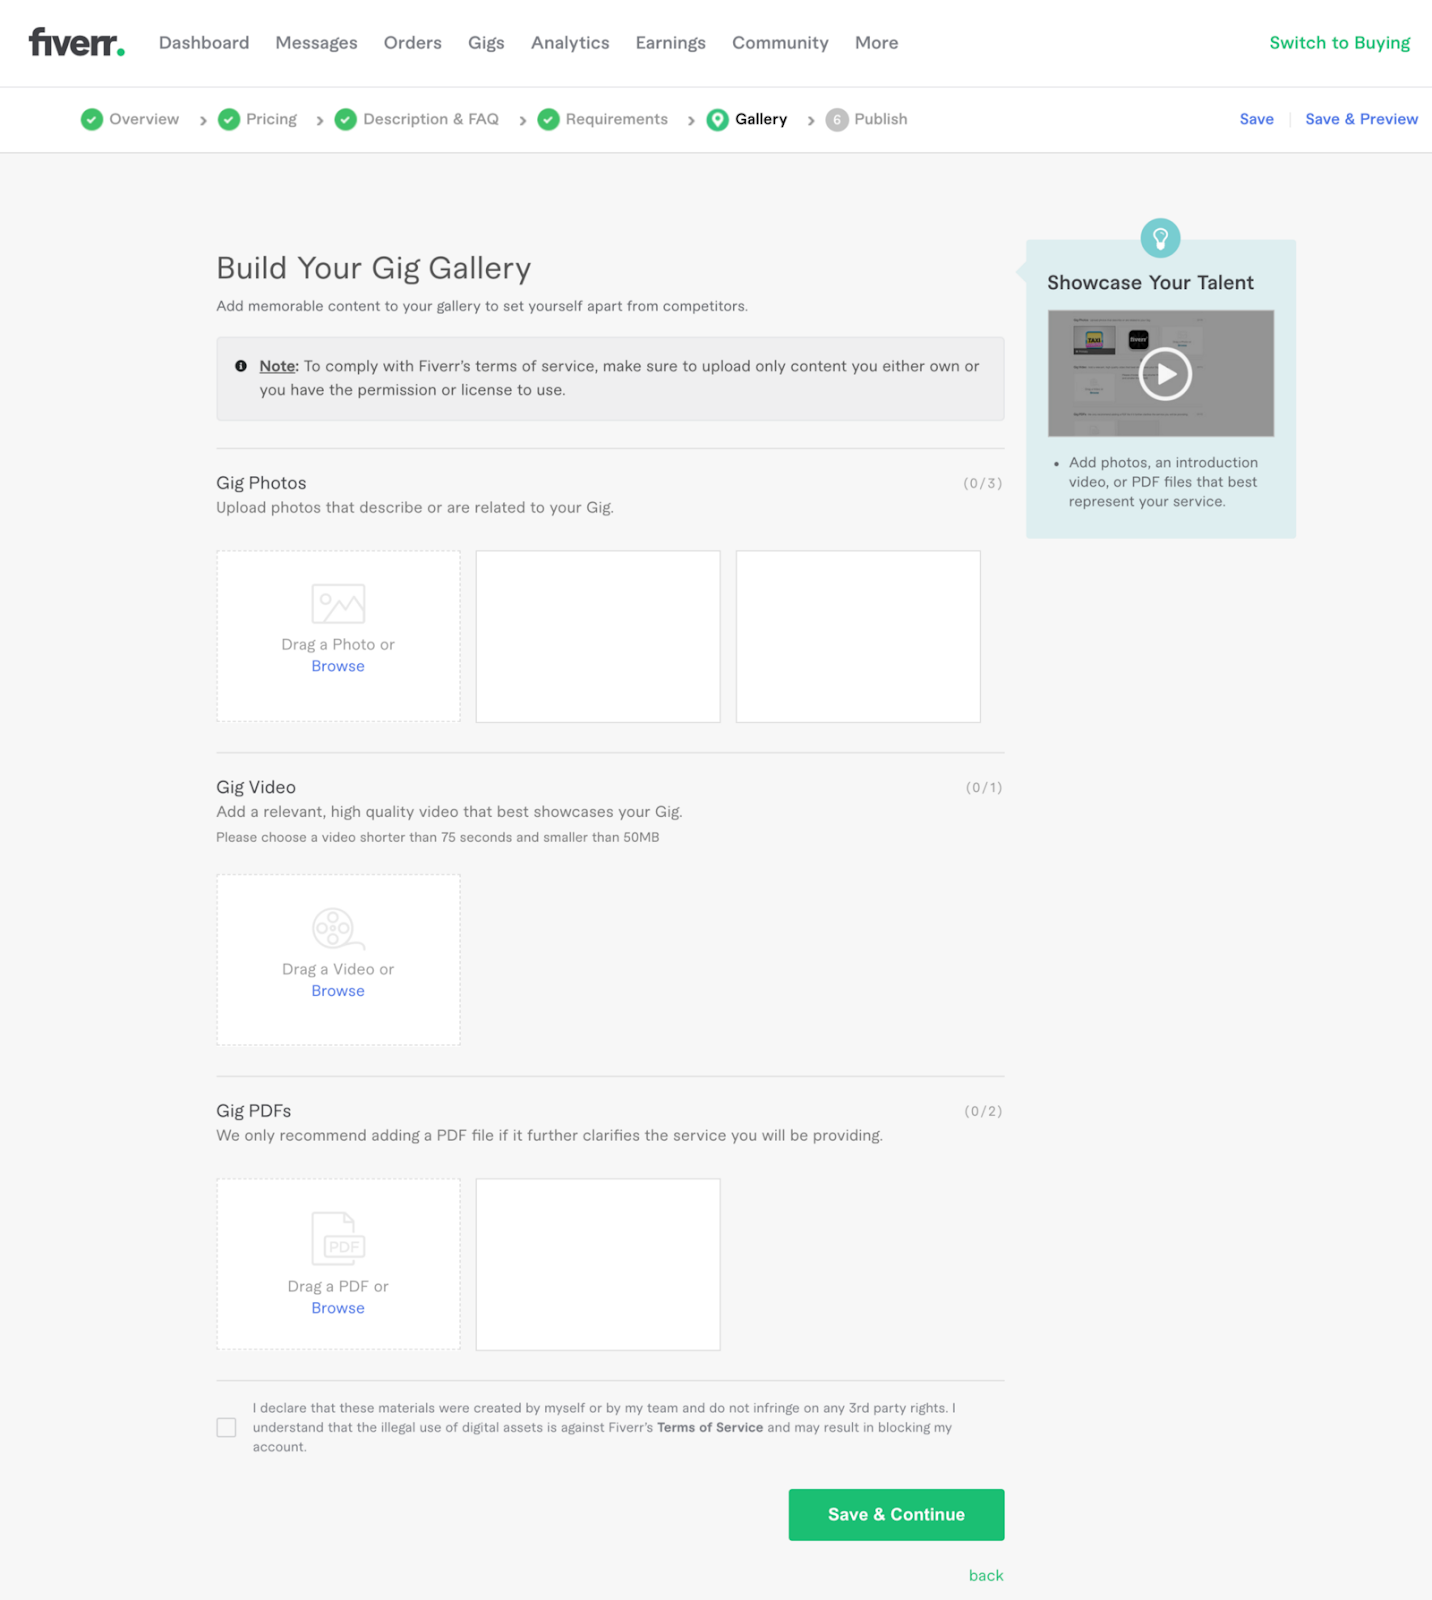 Step 5 in creating a gig on Fiverr. Build your gig gallery.